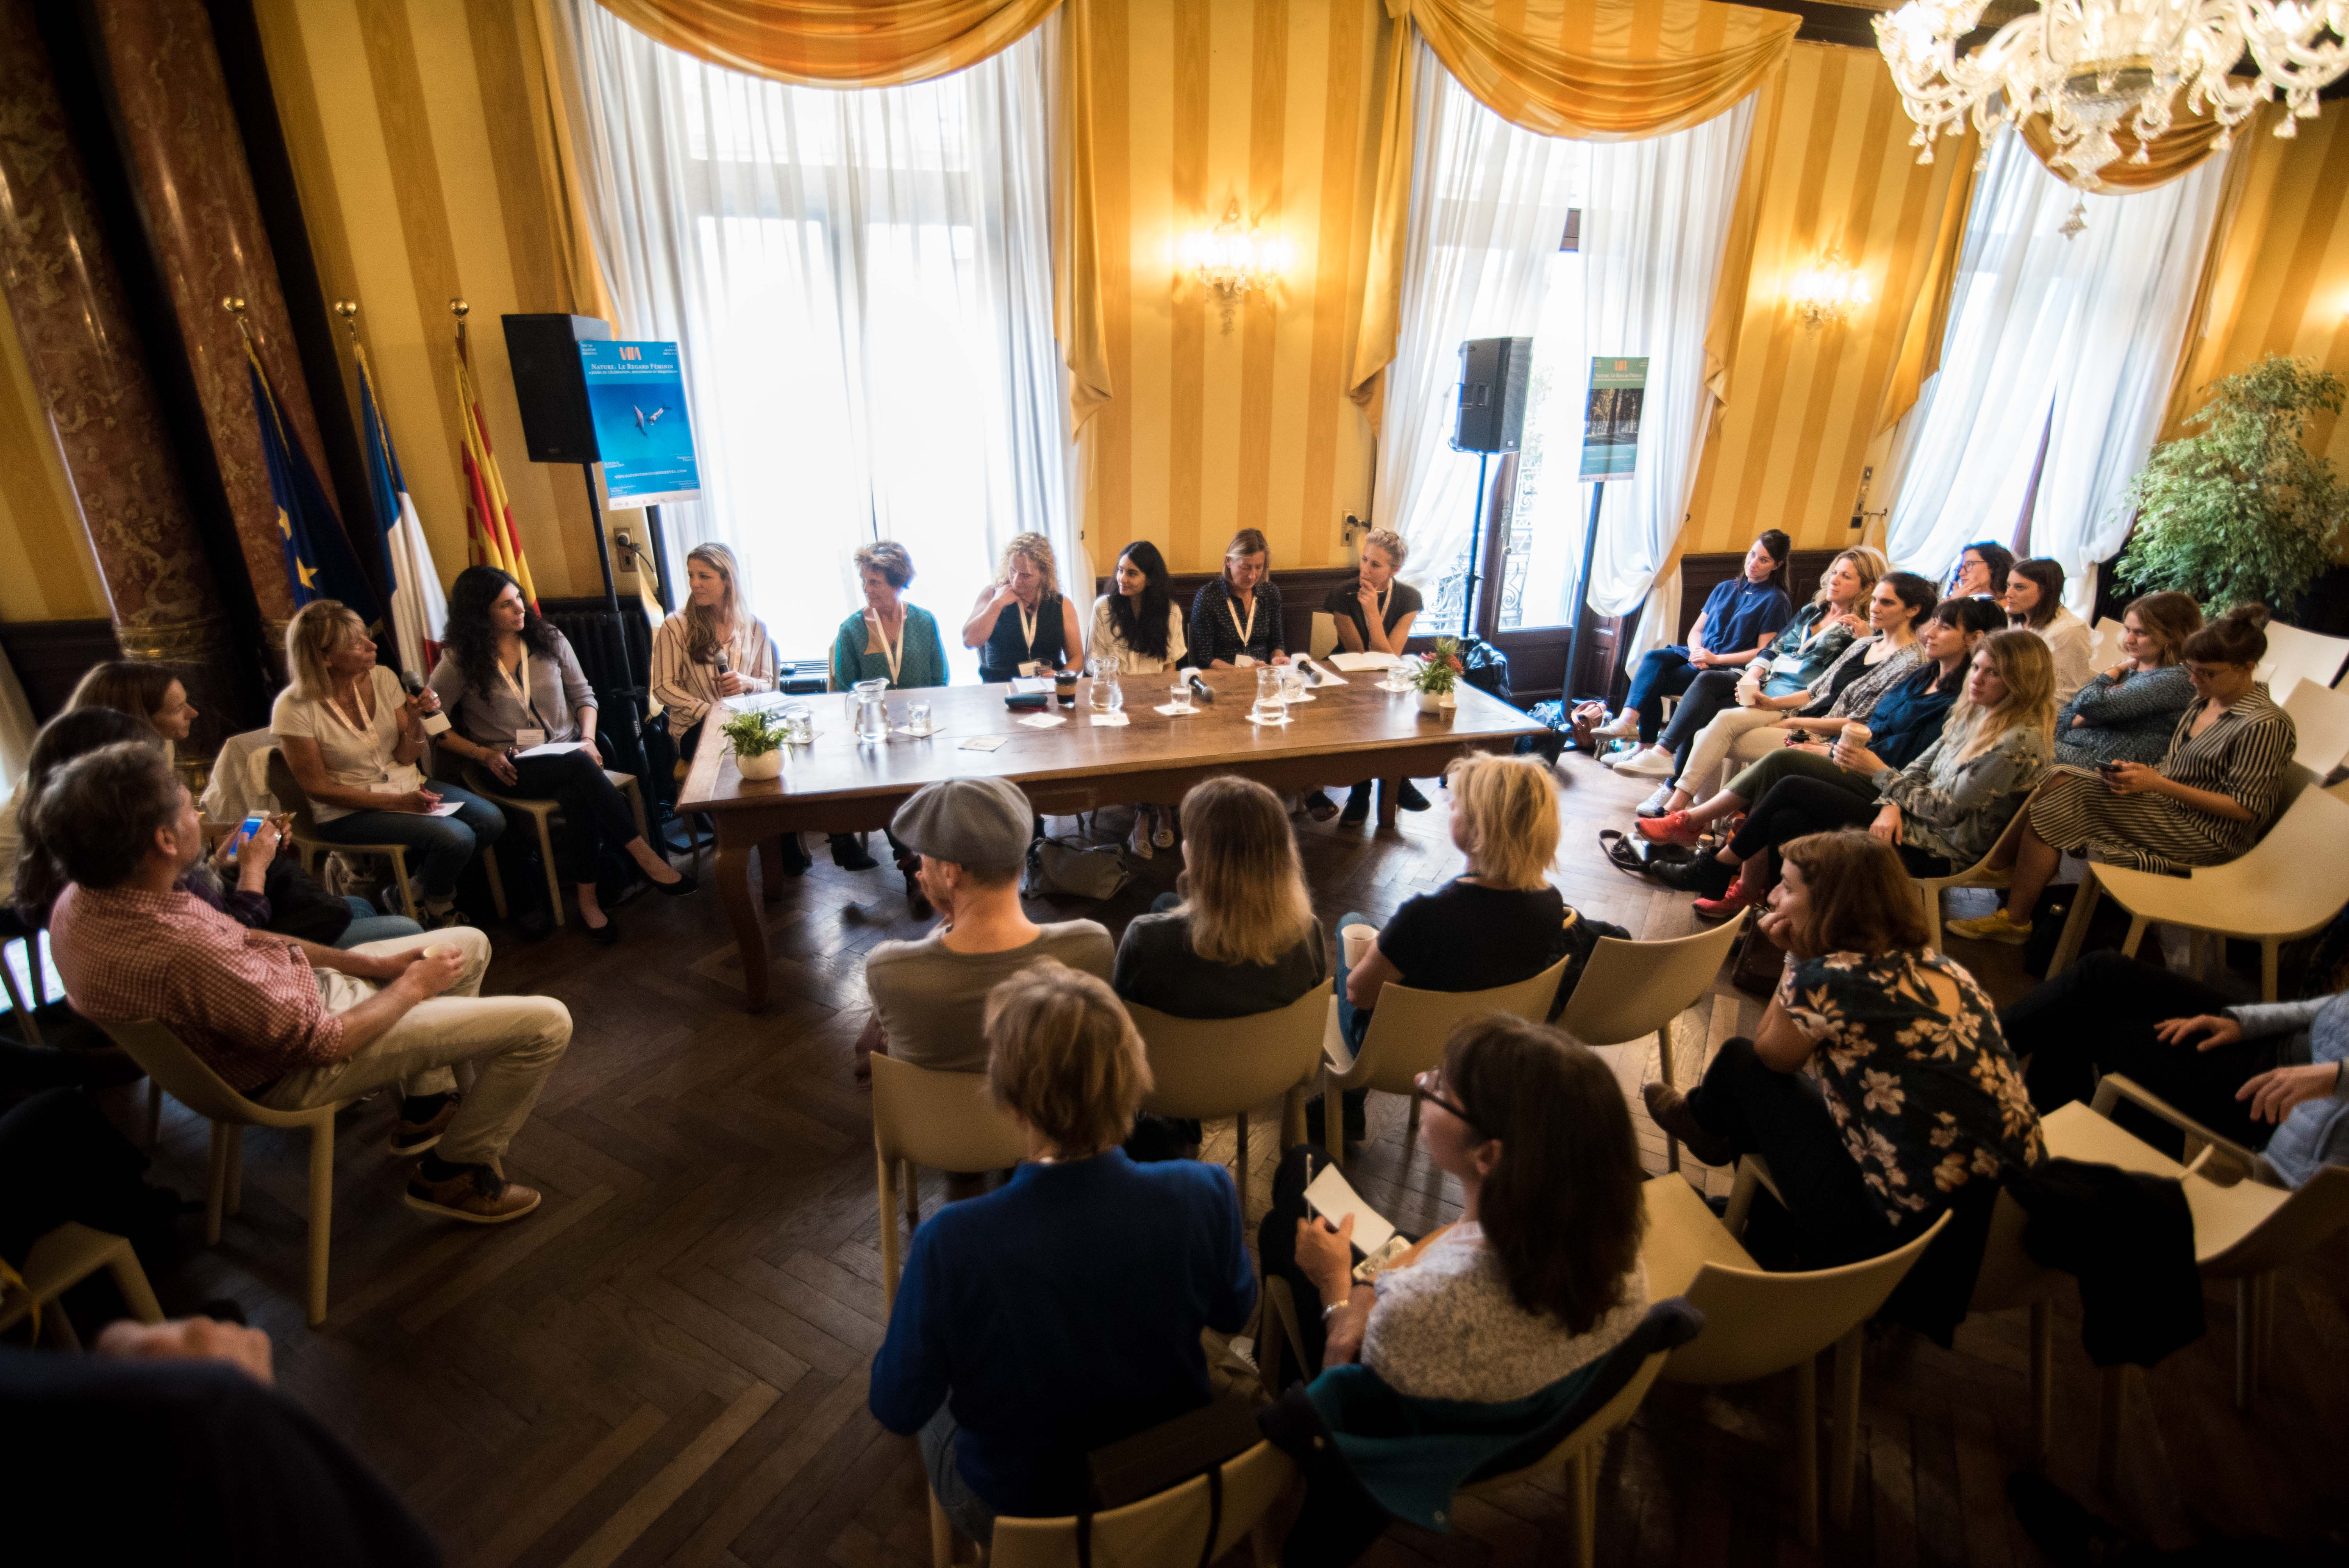 """The panel discussion """"Women in the Field, Barriers and Solutions"""" on Saturday, October 19, 2019 at the Nature: Through Her Eyes festival hosted by the VII Academy. © Stephane Ferrer Yulianti"""